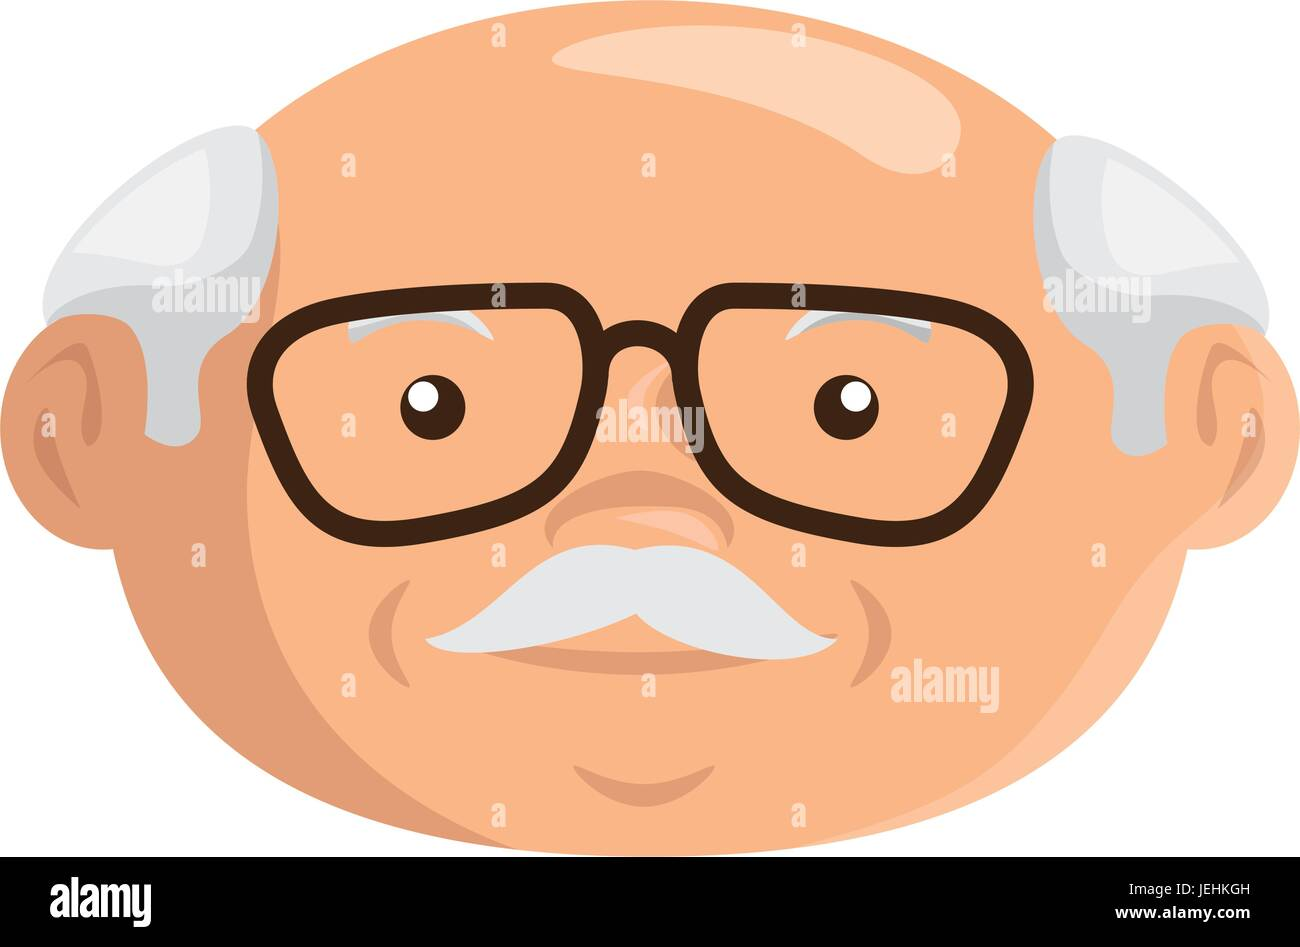 Caras De Abuelitos: Cartoon Grandfather Icon Stock Vector Art & Illustration